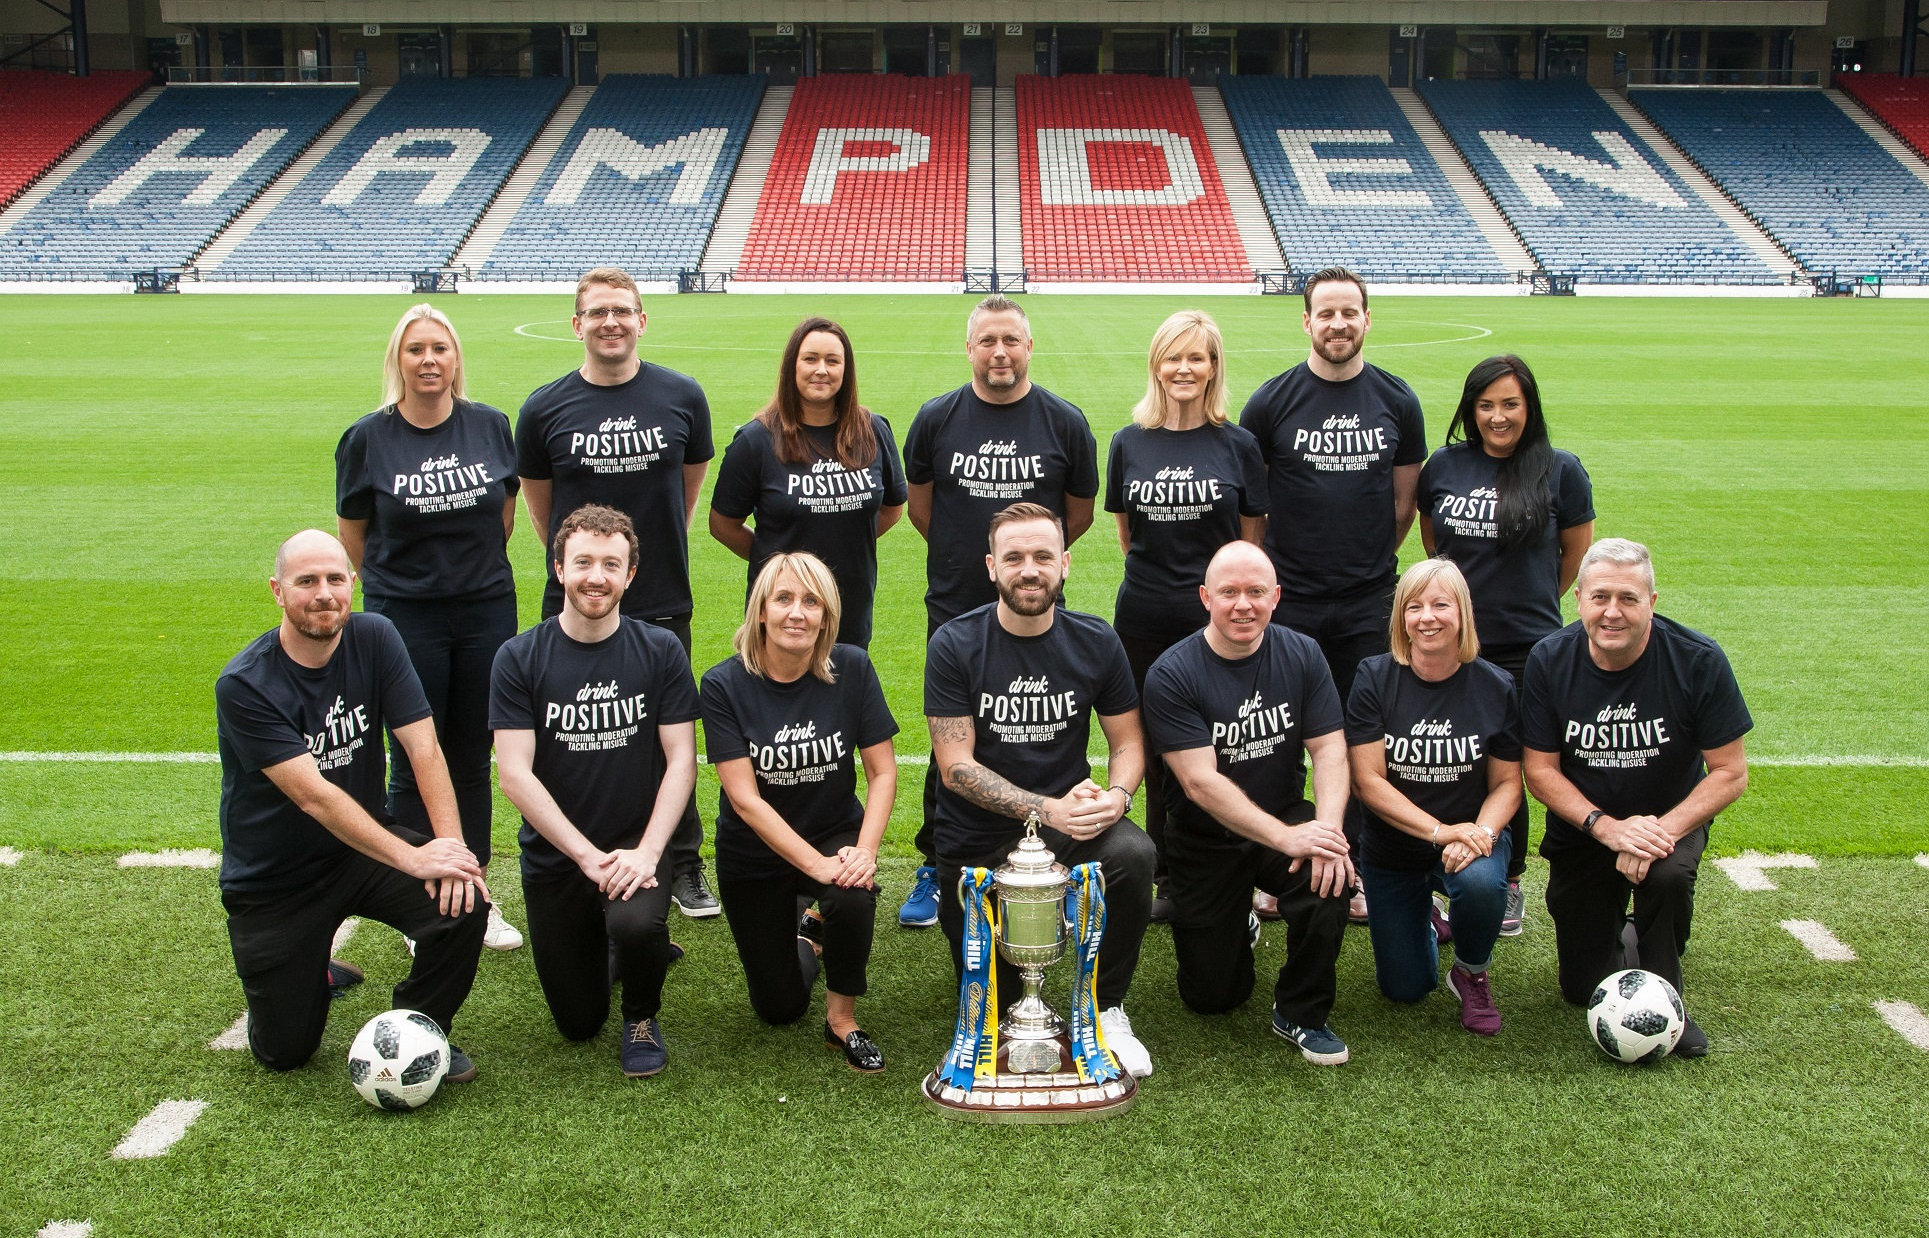 The campaign was launched at Hampden Park with James McFadden. Photograph: Tina Norris